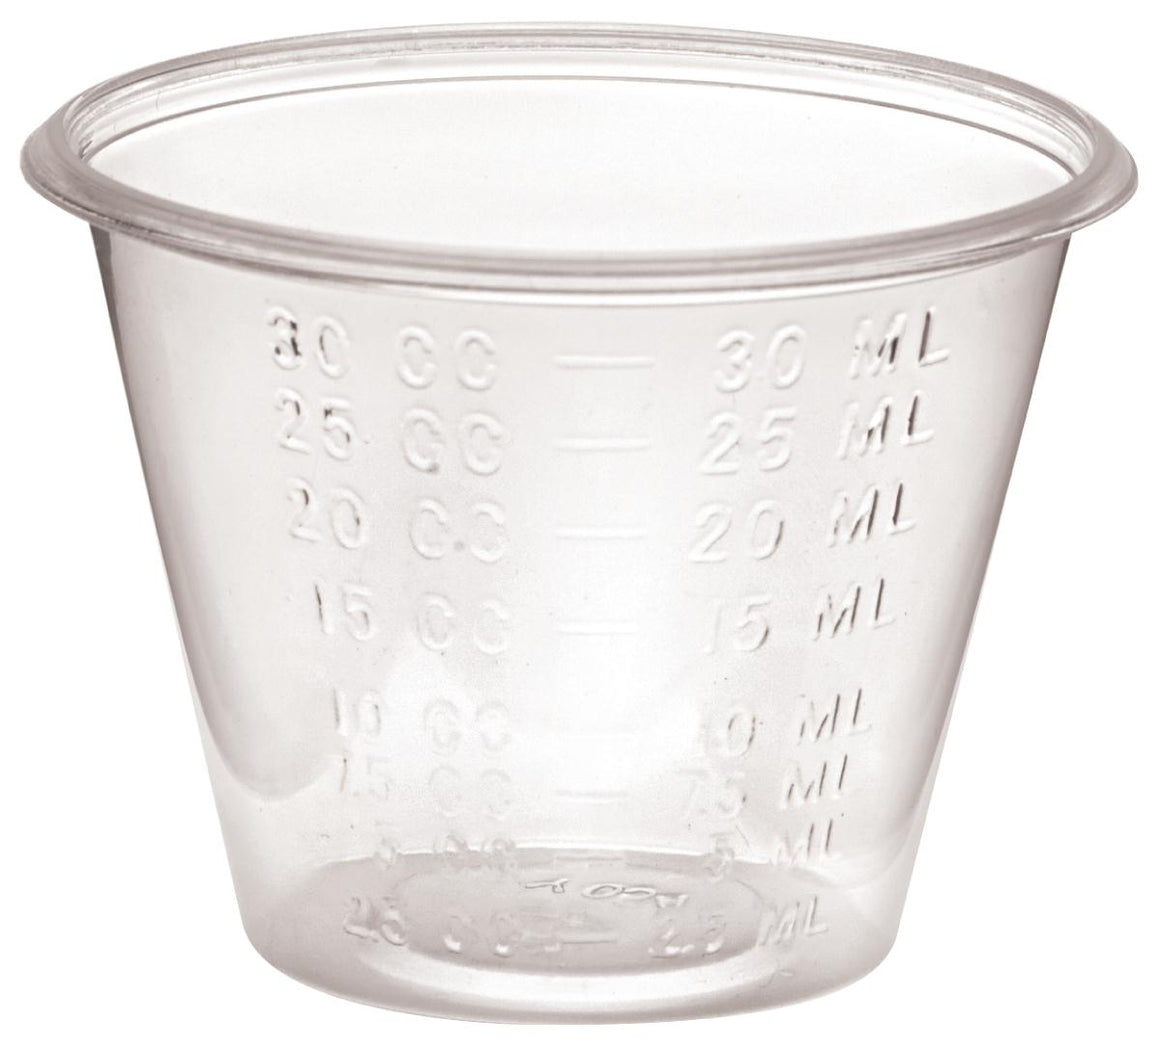 Non-Sterile Graduated Plastic Medicine Cups,1, Case of 5000